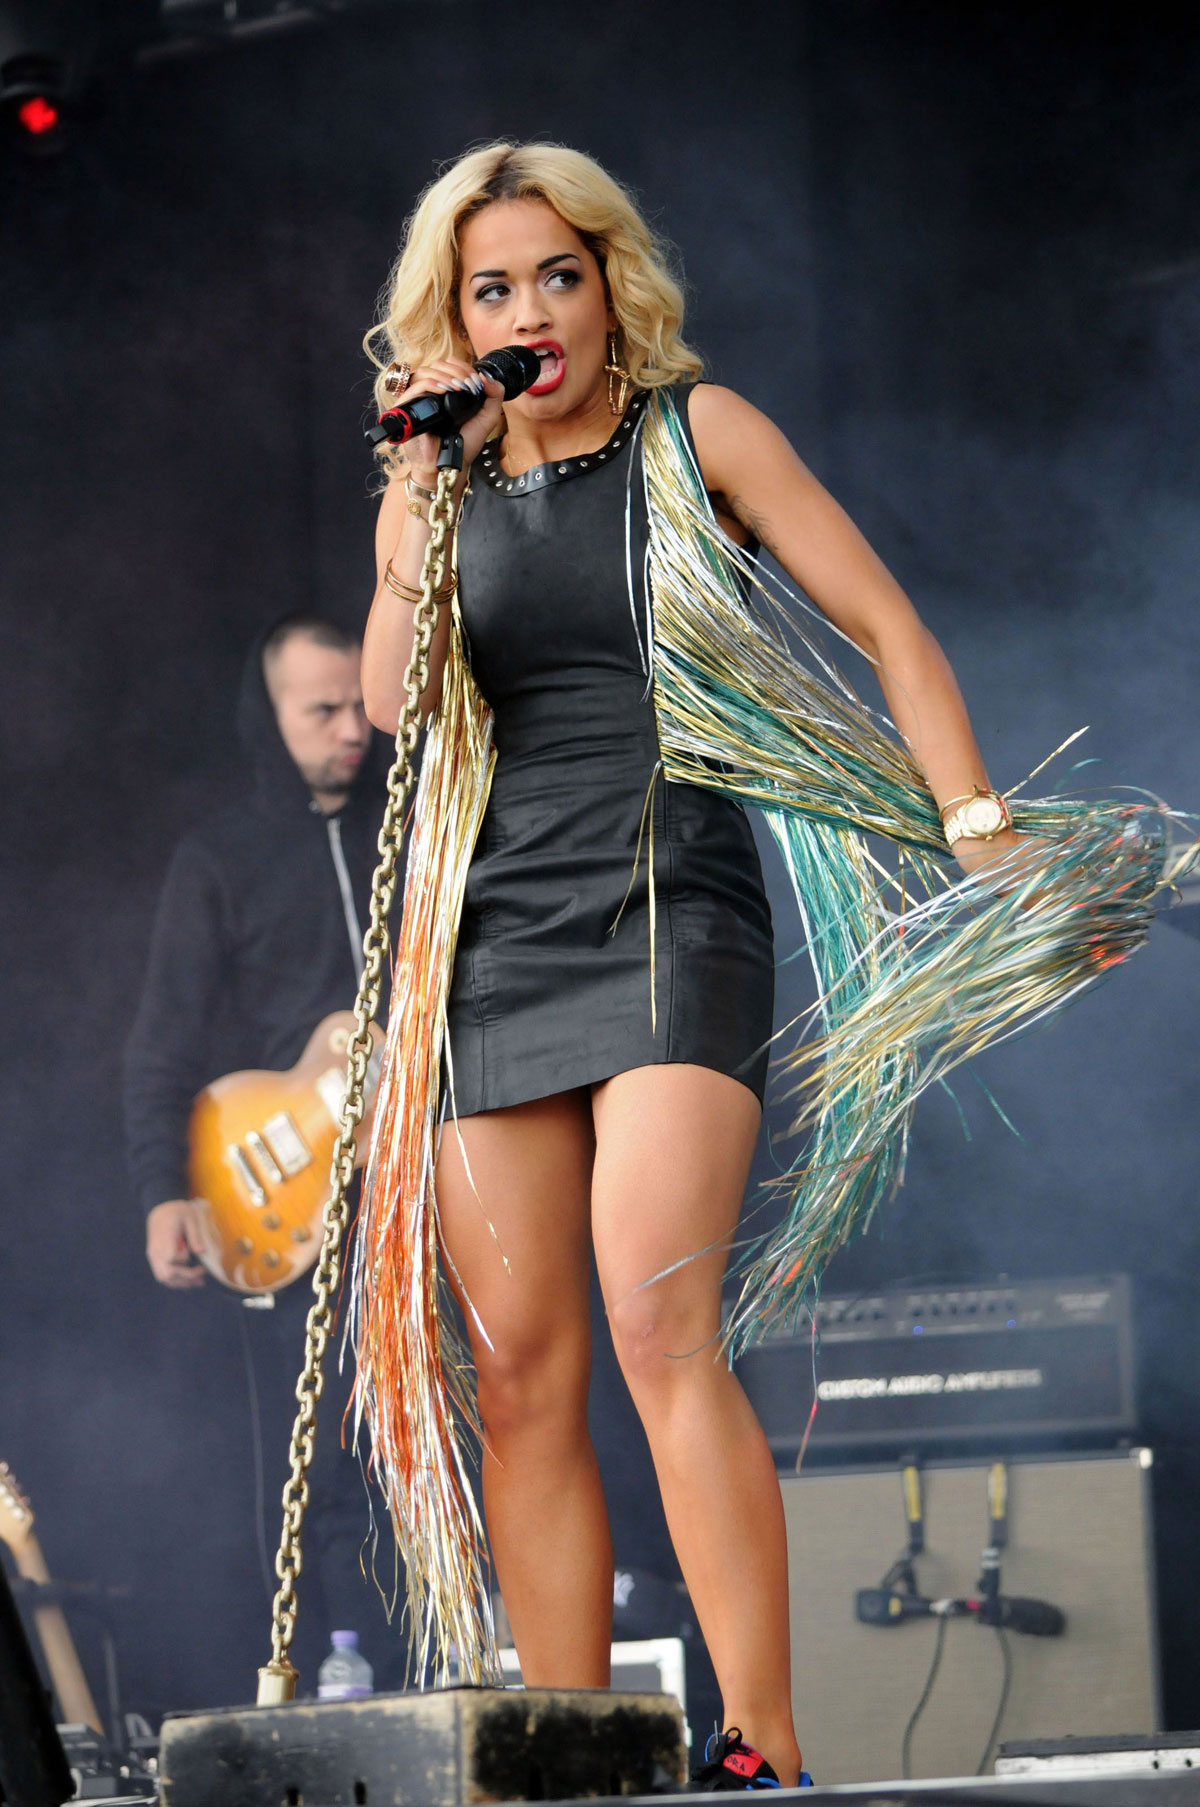 http://www.hawtcelebs.com/wp-content/uploads/2012/07/RITA-ORA-Performs-at-T-In-The-Park-24.jpg